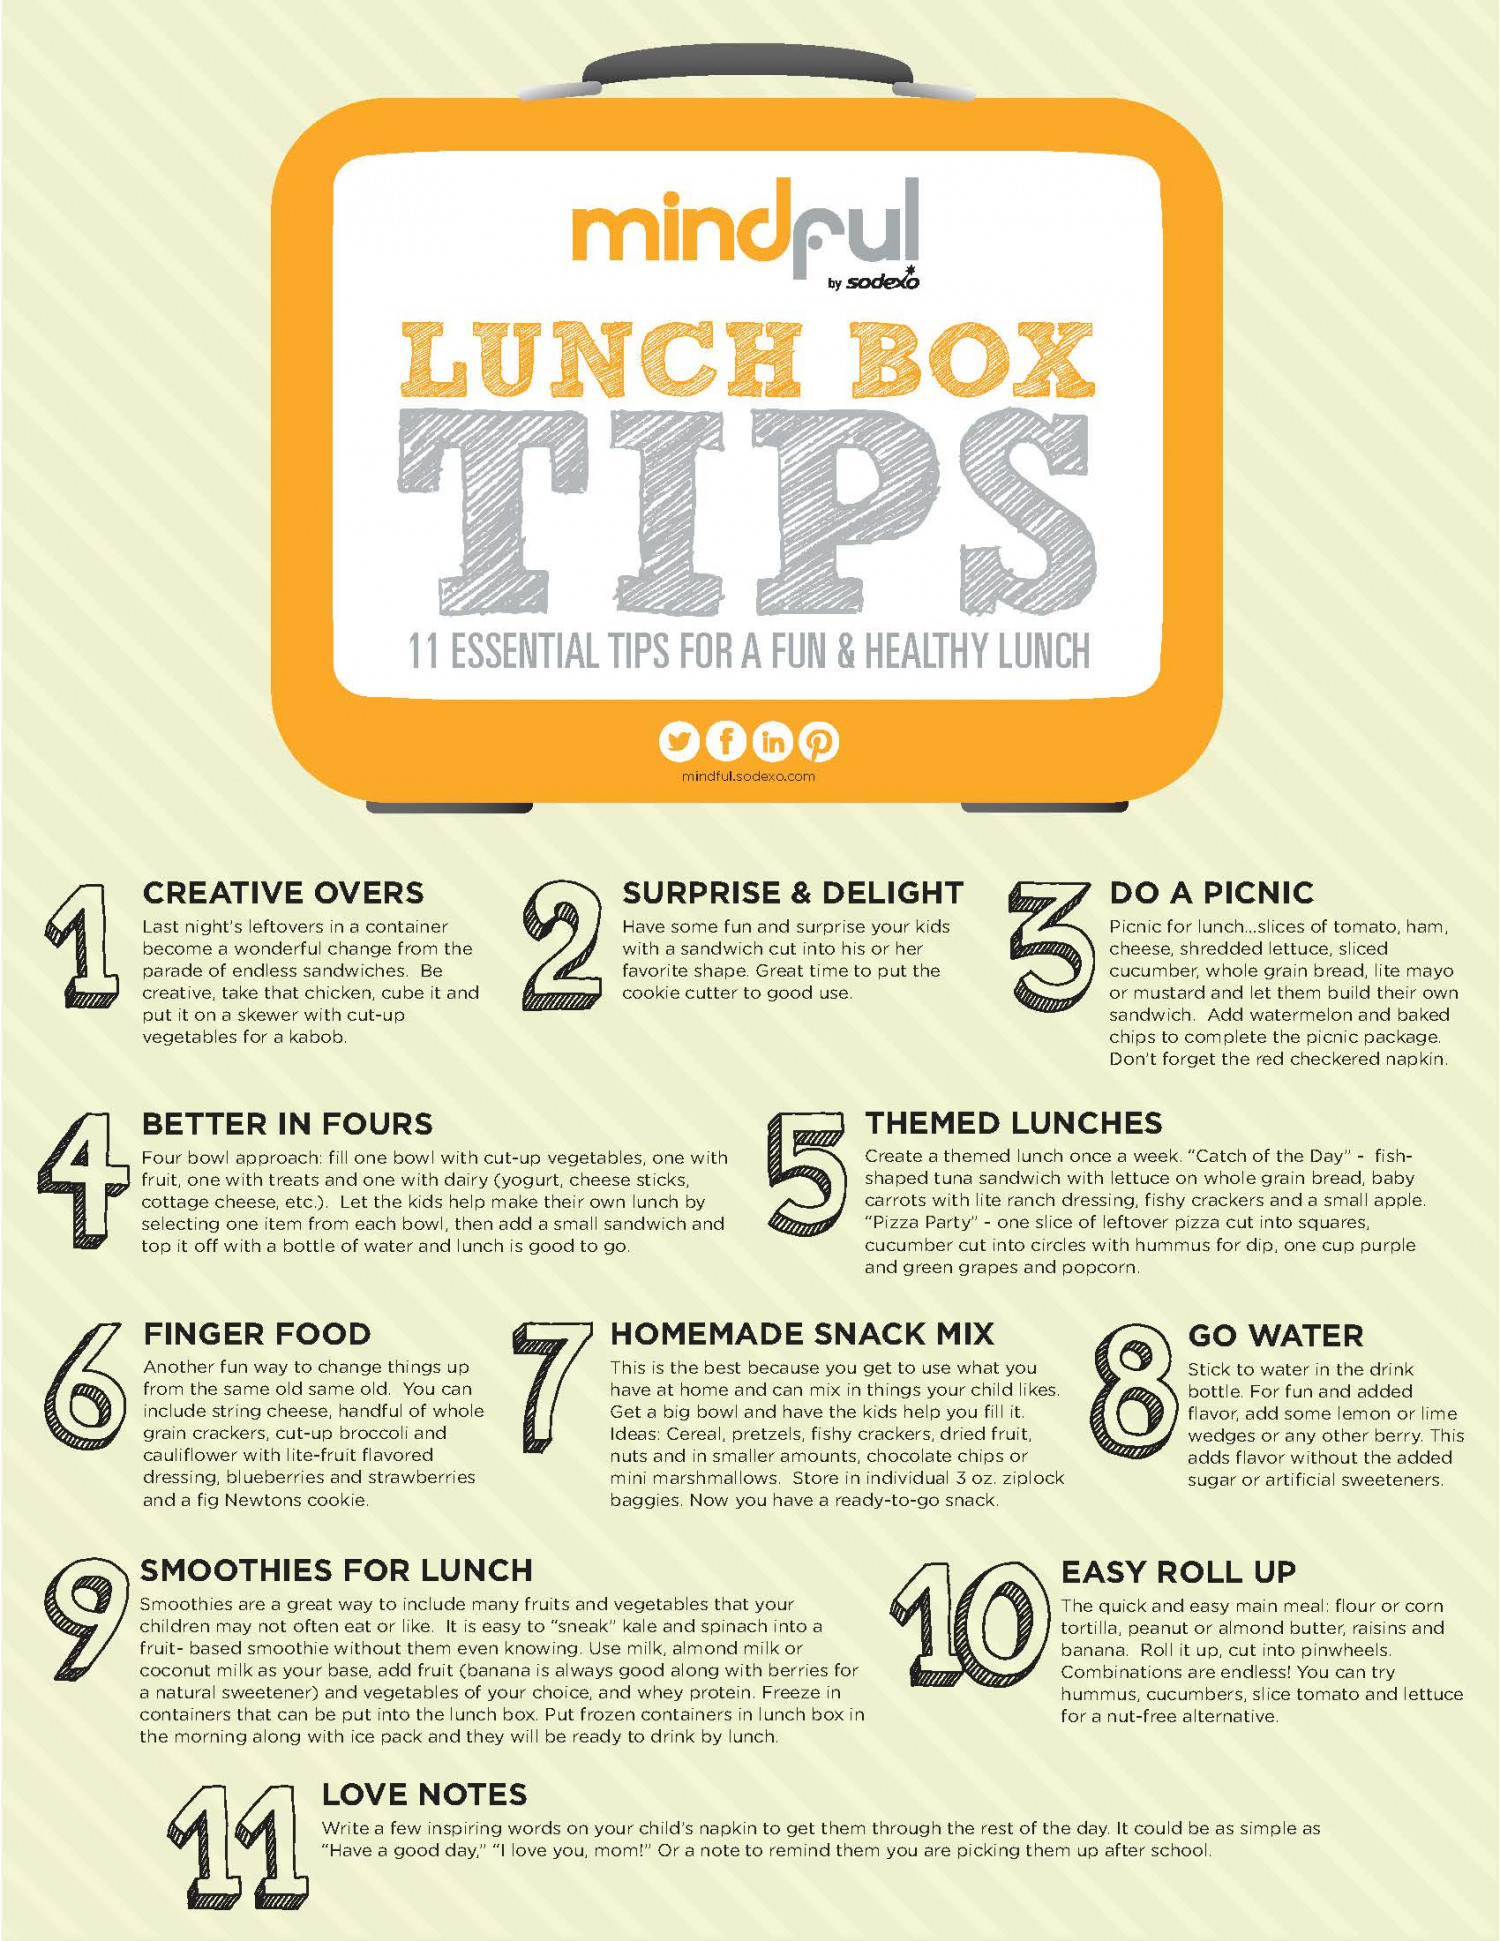 Mindful Lunch Box Tips Infographic